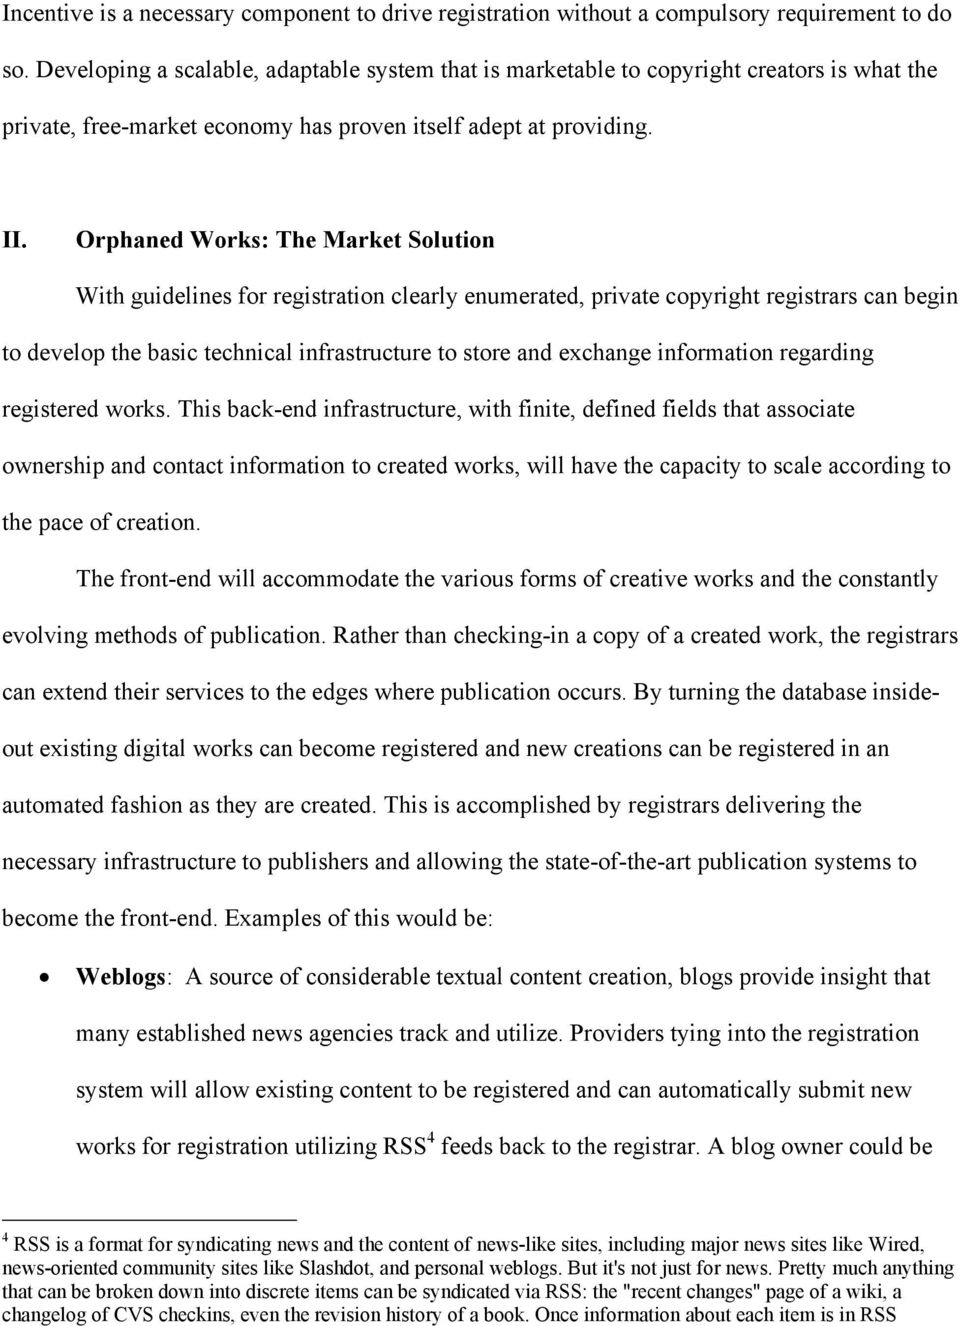 Orphaned Works: The Market Solution With guidelines for registration clearly enumerated, private copyright registrars can begin to develop the basic technical infrastructure to store and exchange